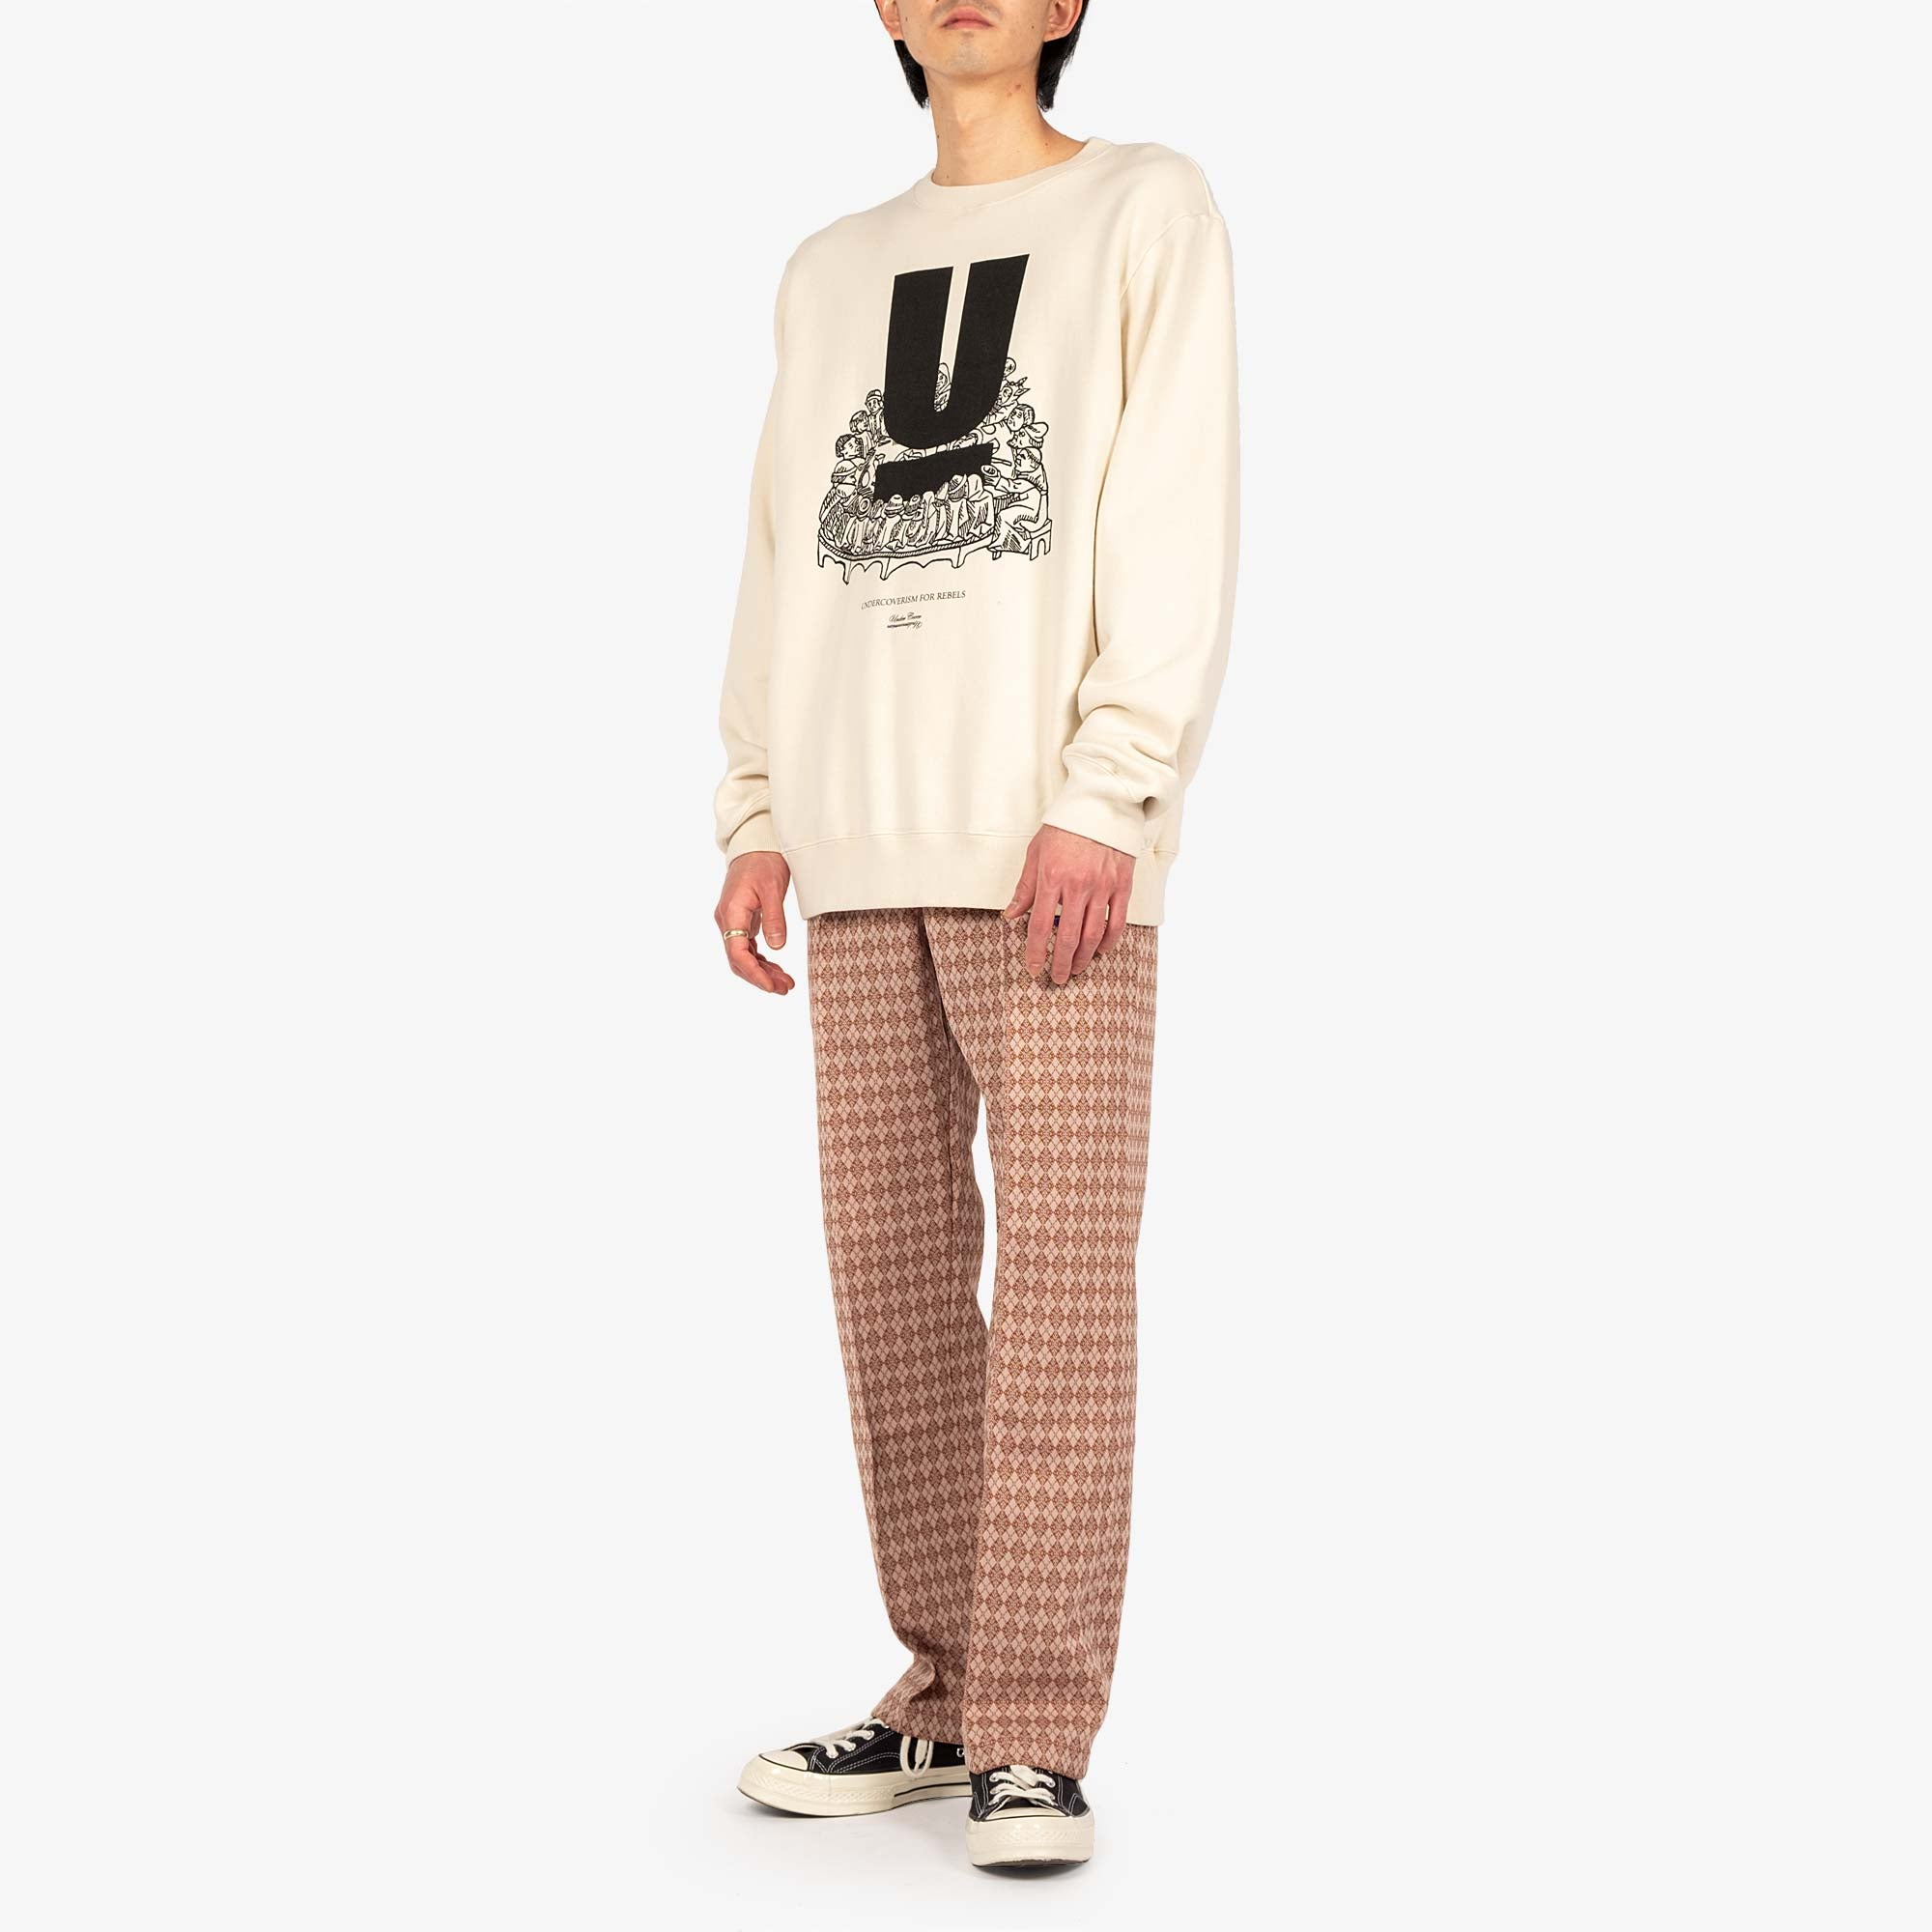 Undercover U Table Sweat UC2A4893-4 - Ivory 3